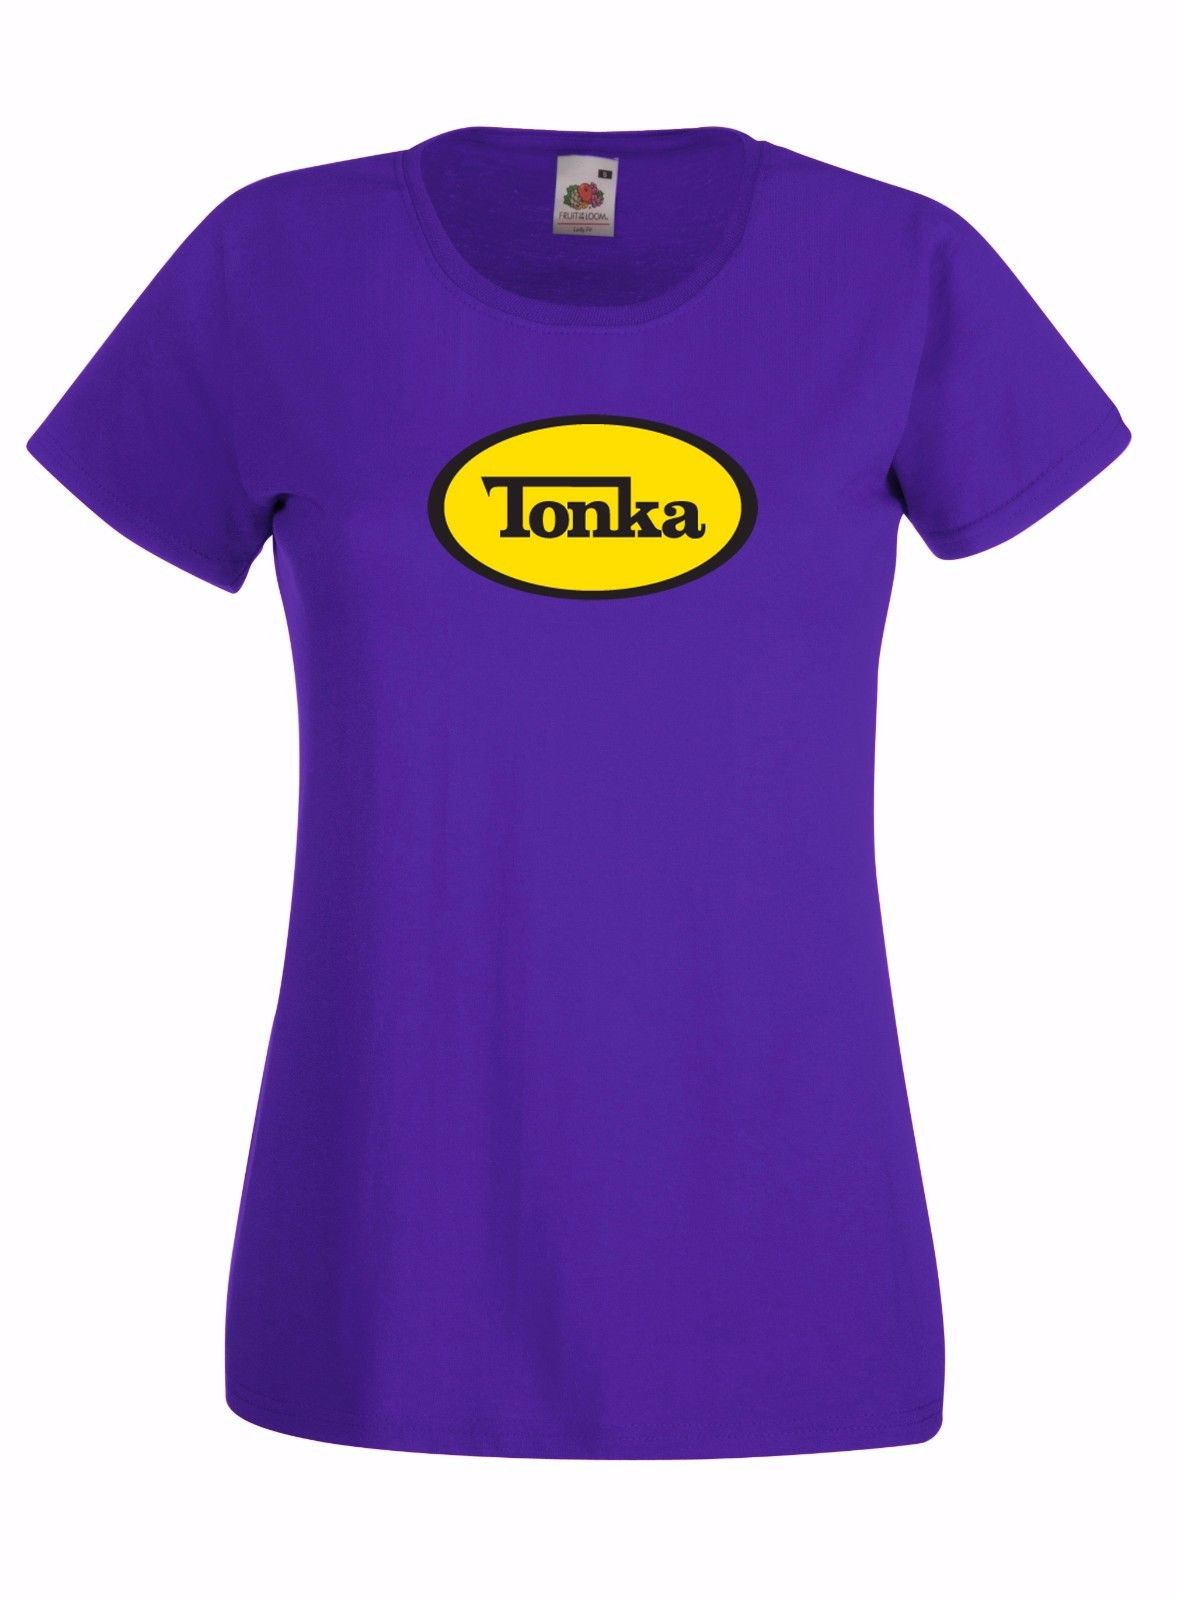 Tonka inspired style graphic high quality ladies skinny for Good quality cotton t shirts